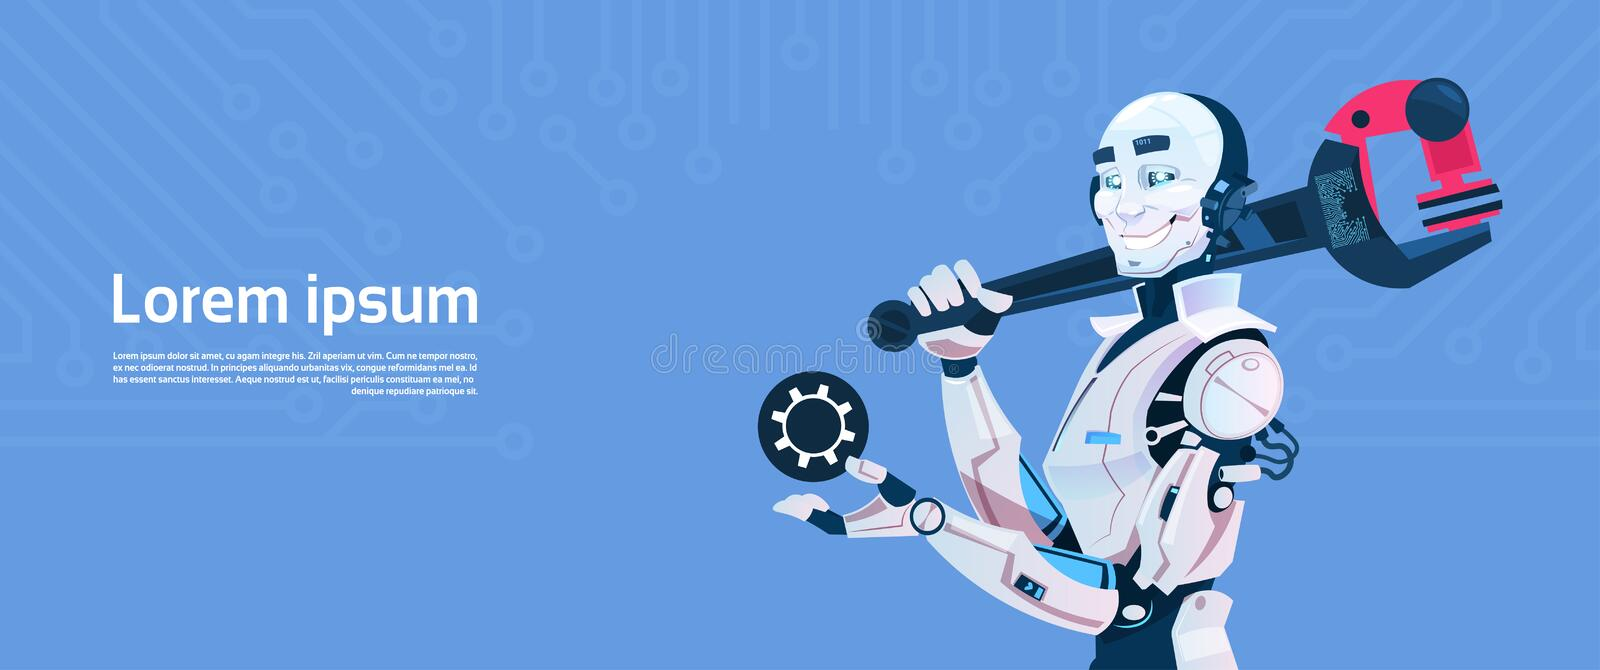 Modern Robot Hold Hold Spanner Wrench, Futuristic Artificial Intelligence Mechanism Technology. Flat Vector Illustration royalty free illustration